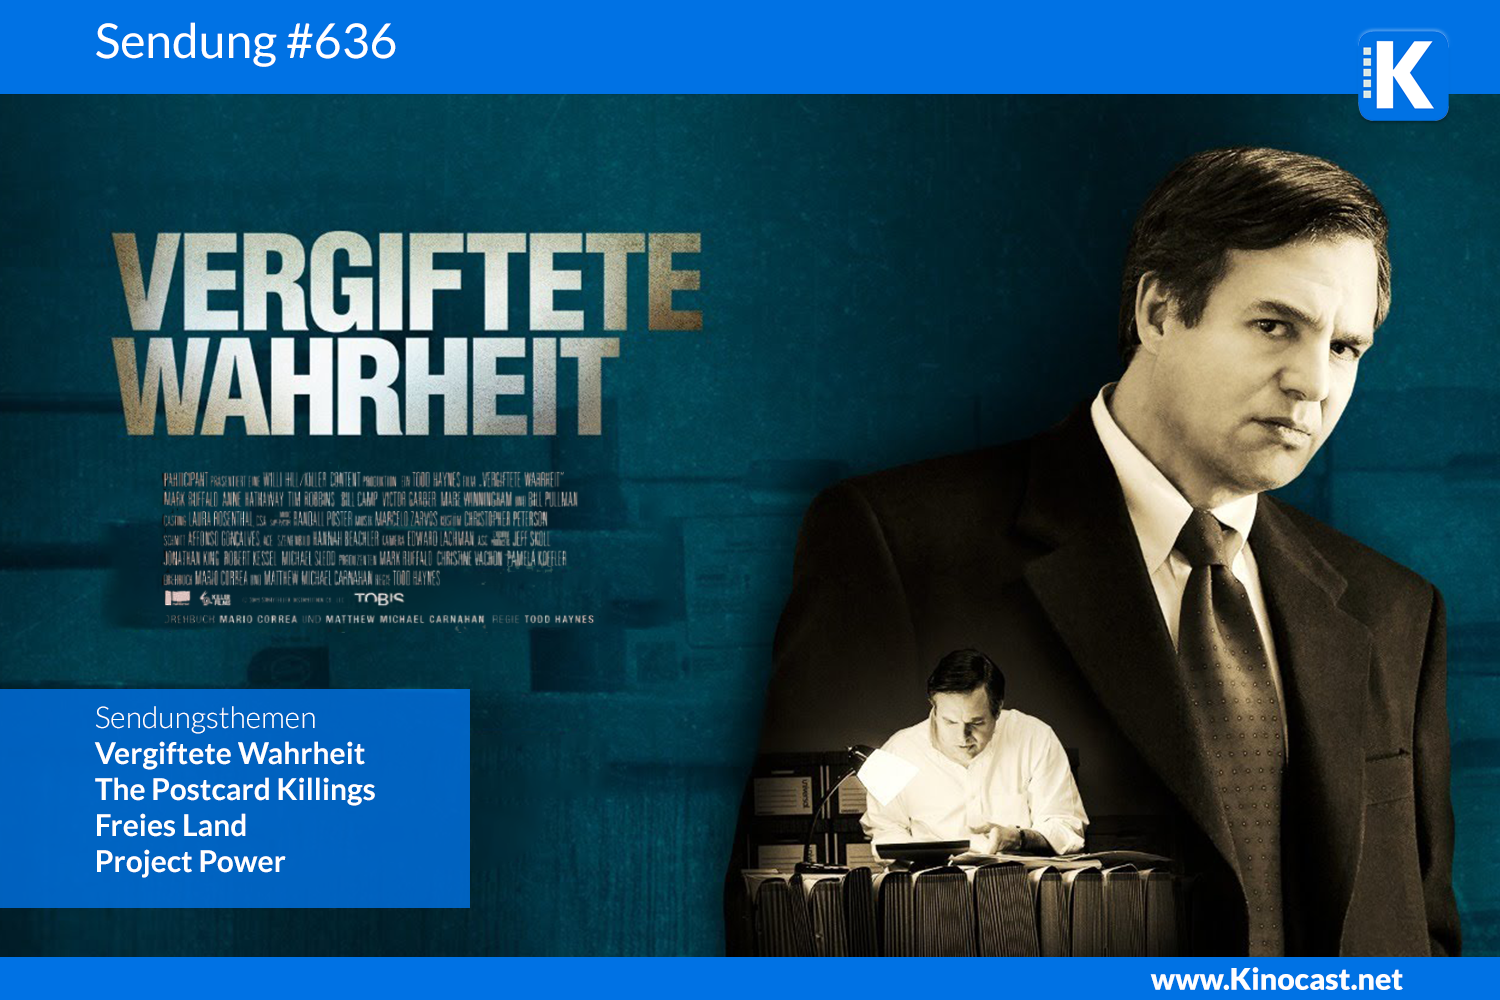 Vergiftete Wahrheit Dark Waters Freies Land x American Murder Download Kritik film german deutsch Podcast